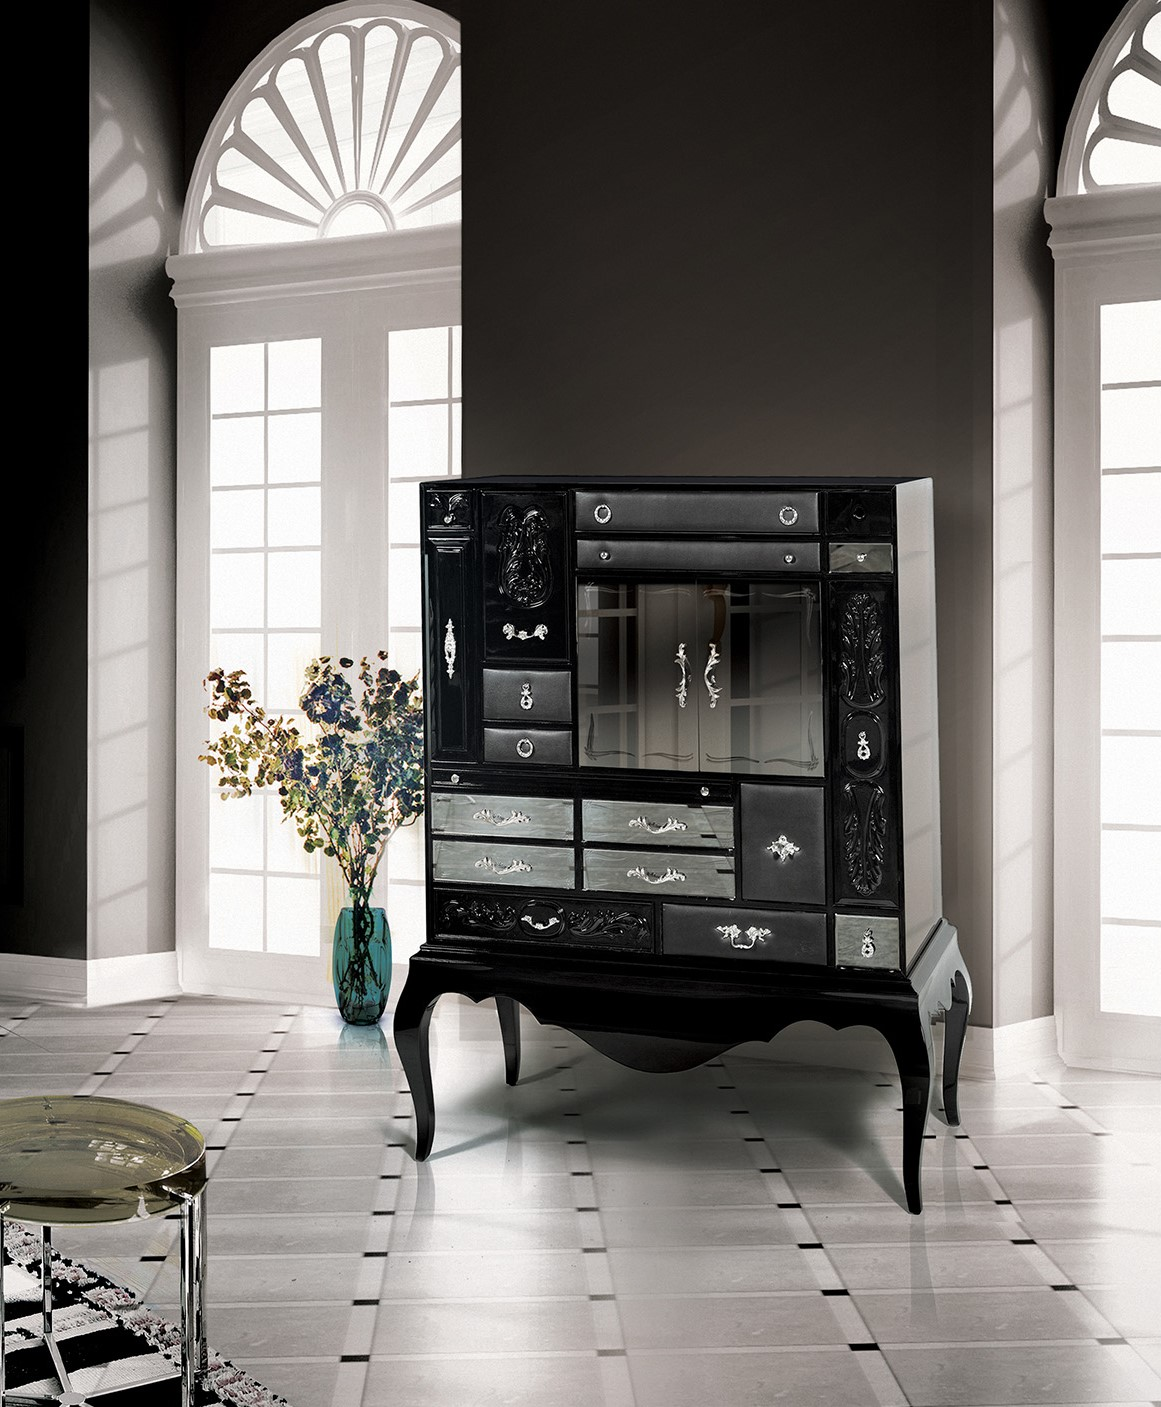 luxury cabinets luxury cabinets The Most Detailed Luxury Cabinets 1 The Most Detailed Luxury Cabinets